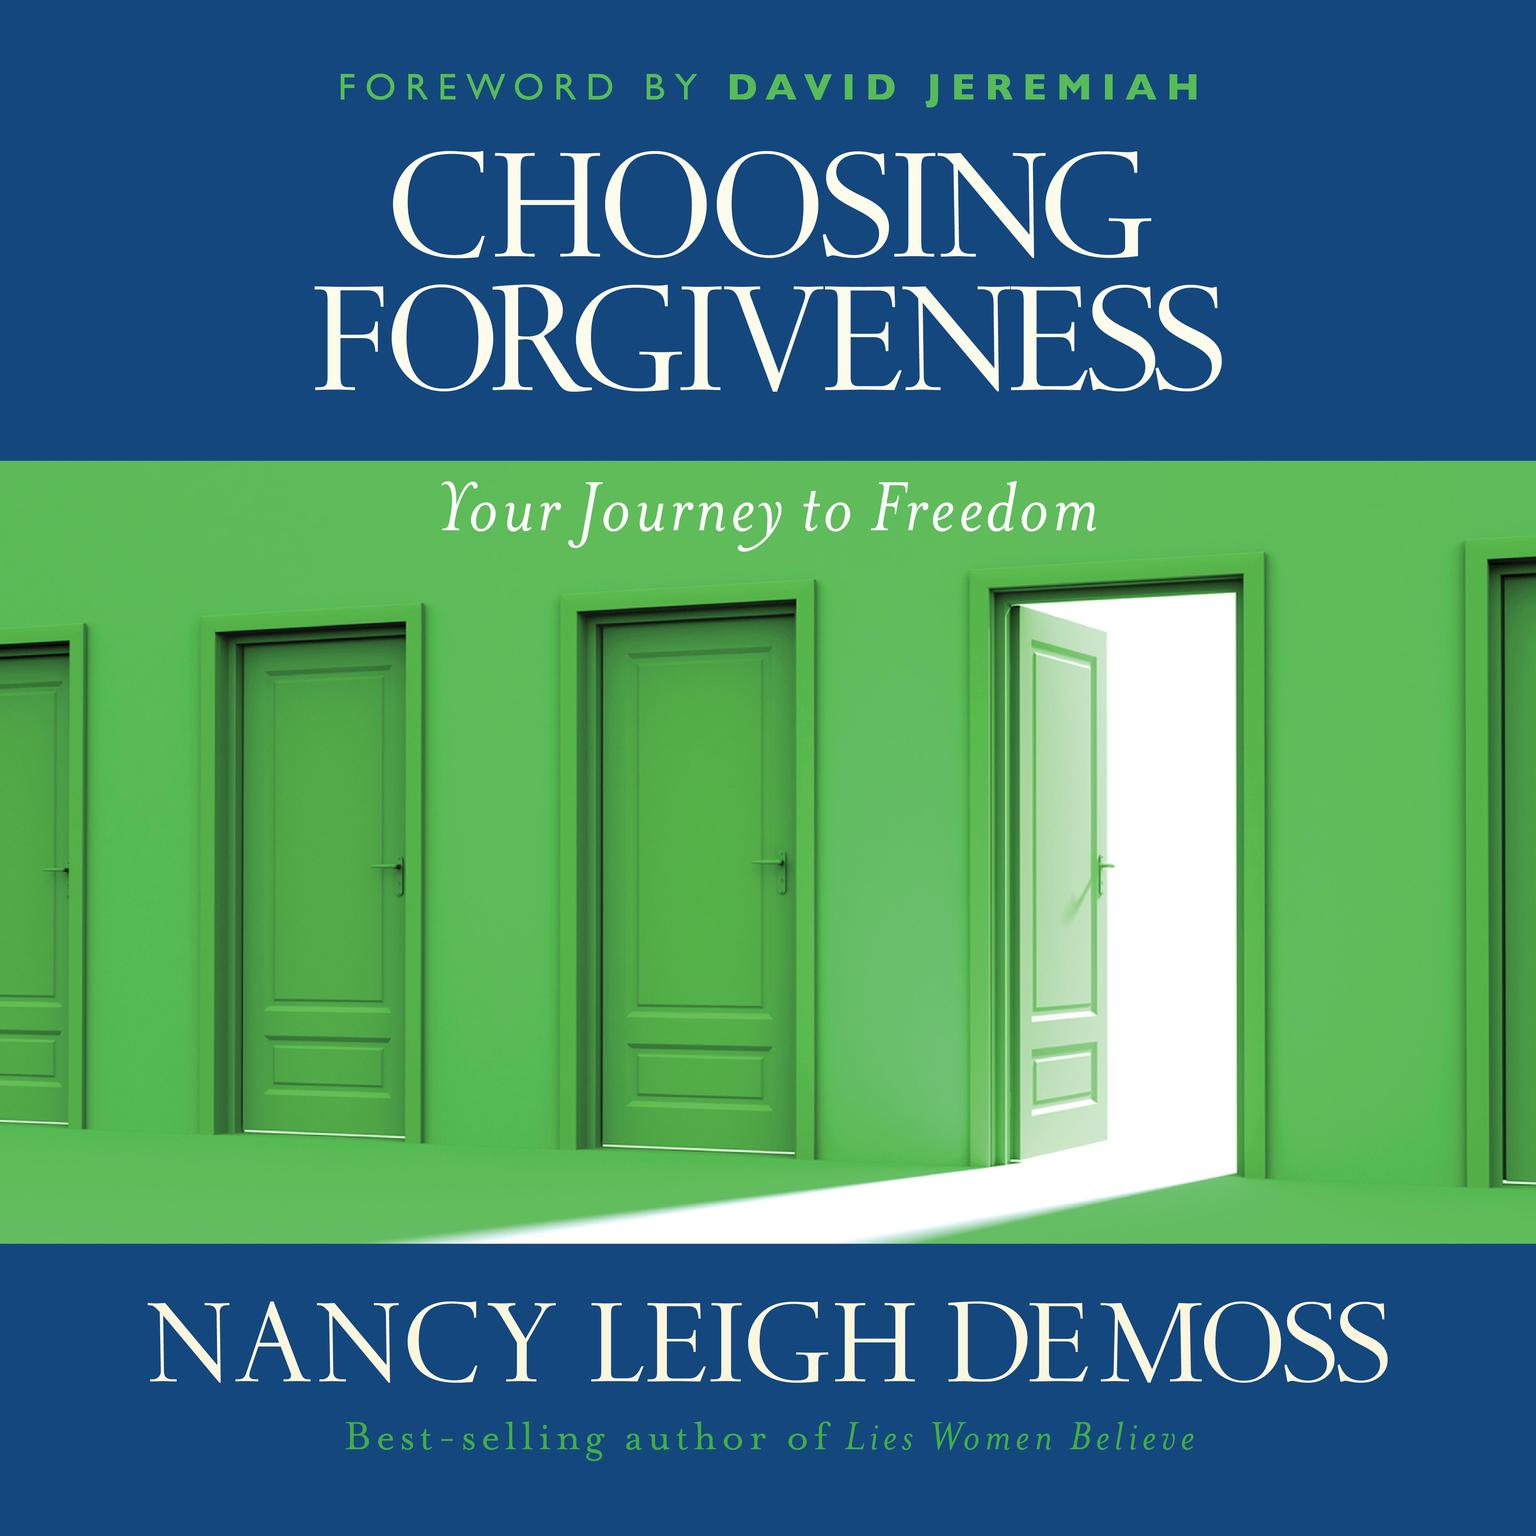 Download Choosing Forgiveness Audiobook by Nancy Leigh DeMoss for just $5.95